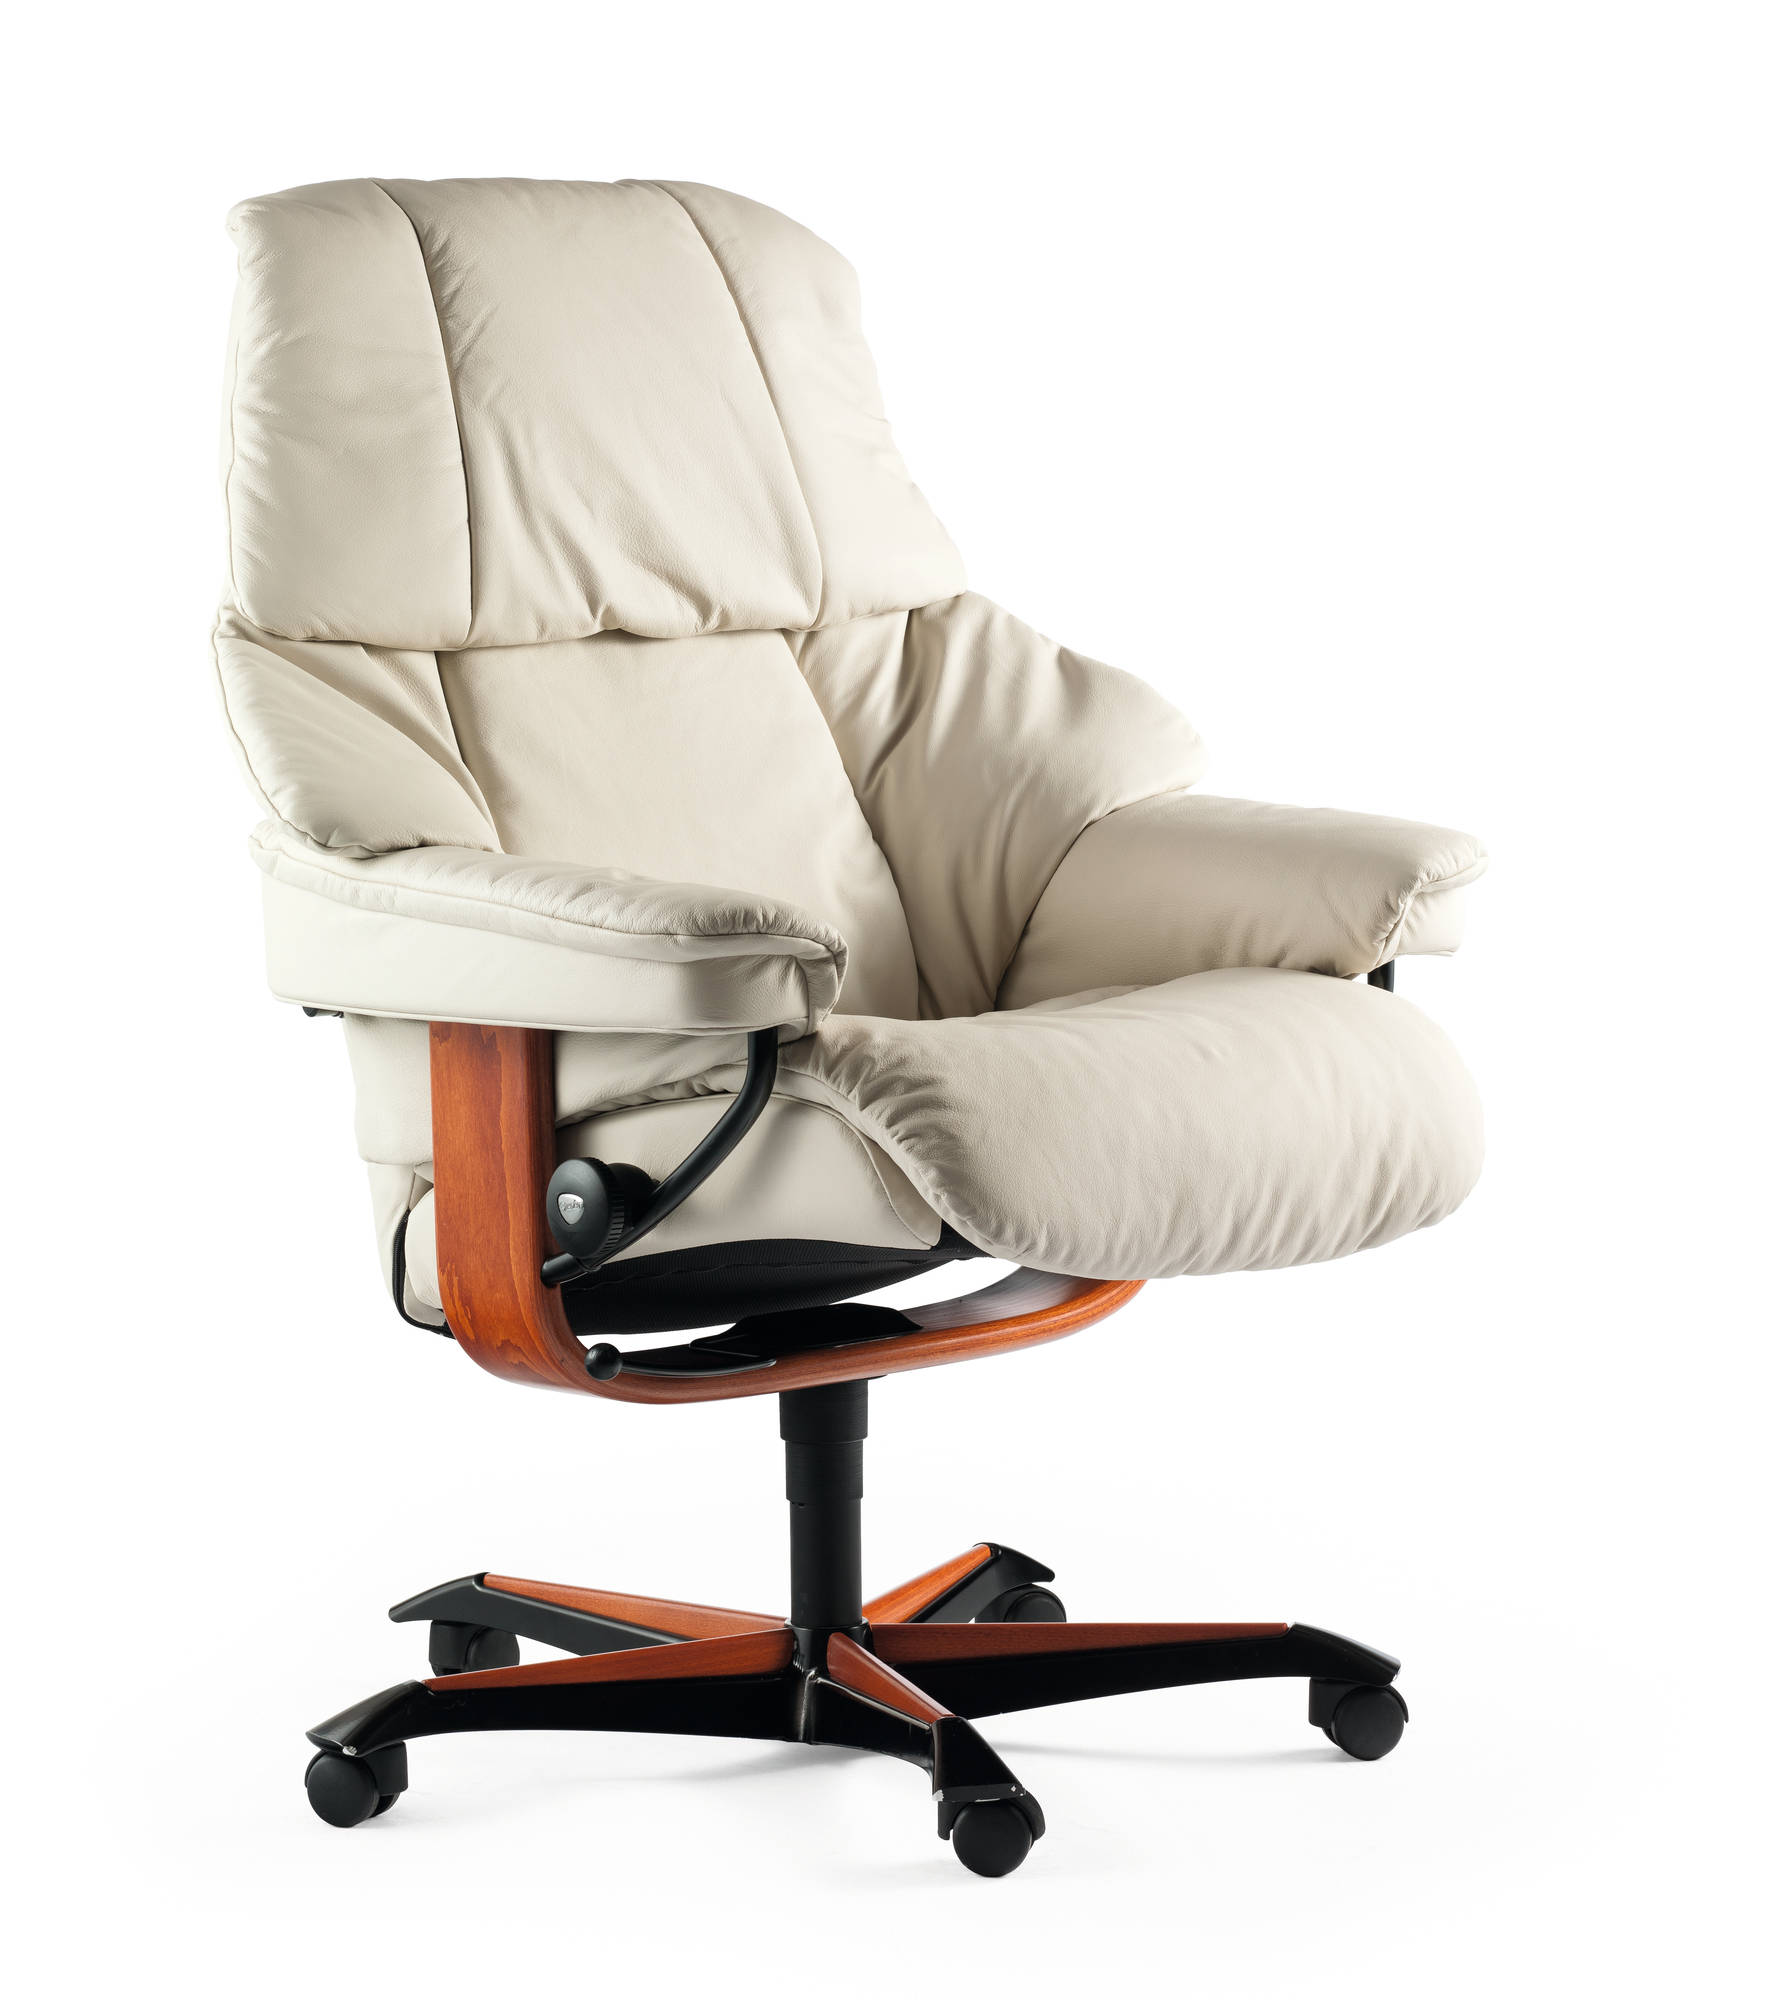 Stressless Sessel Sunrise.html Ekornes Recliner Stressless Showroom Clearance Sale Glamorous 10